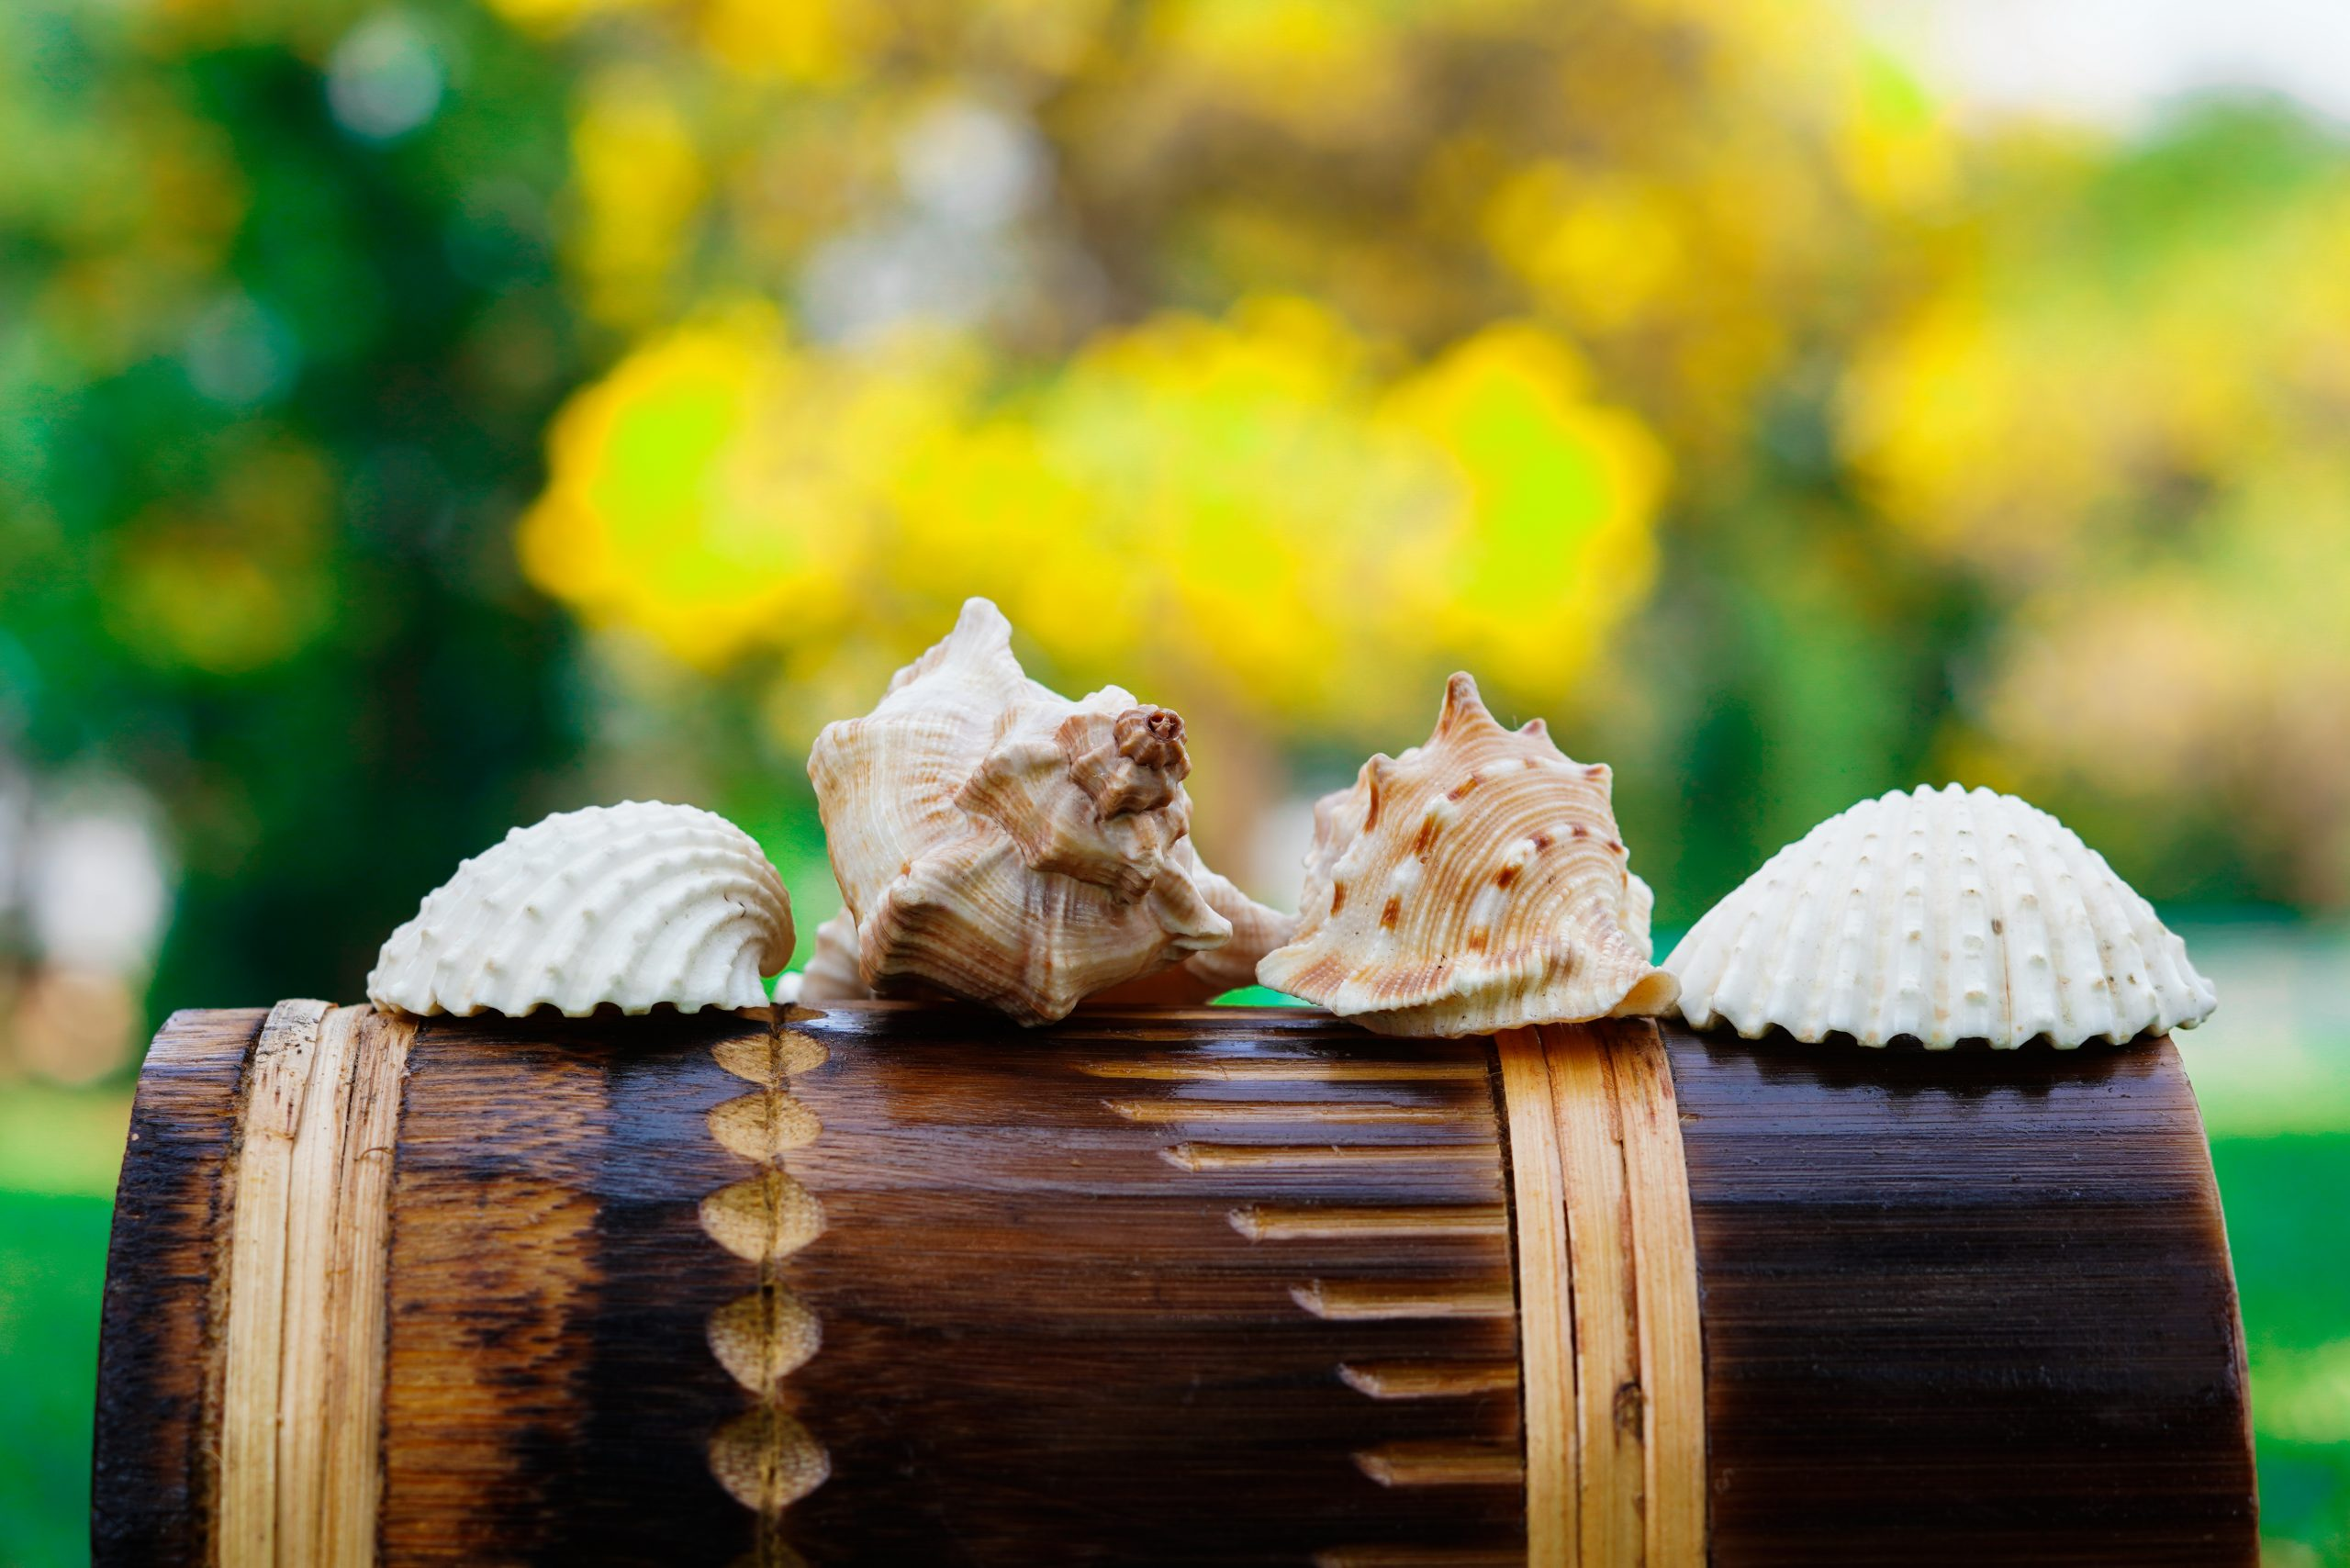 Sea shells on a wooden roll